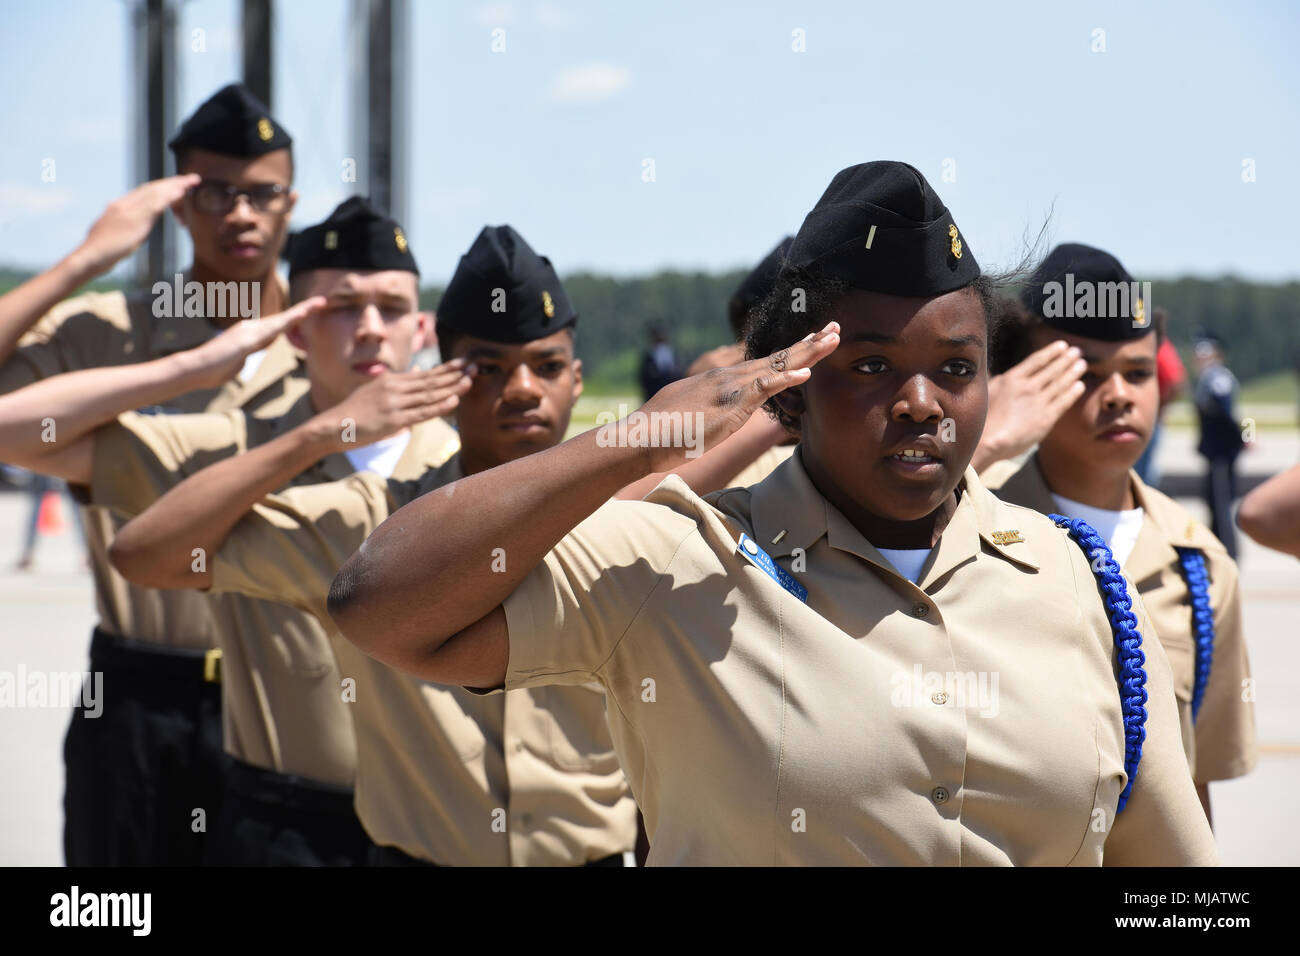 The Dreher High School IDR Platoon Unarmed team from Columbia, S.C. competes during the annual Top Gun Drill Meet at McEntire Joint National Guard Base, S.C., April 28, 2018. High School junior ROTC cadets from across the state competed in drill and ceremony events sponsored by the South Carolina Air National Guard. (U.S. Air National Guard photo by Senior Master Sgt. Edward Snyder) - Stock Image